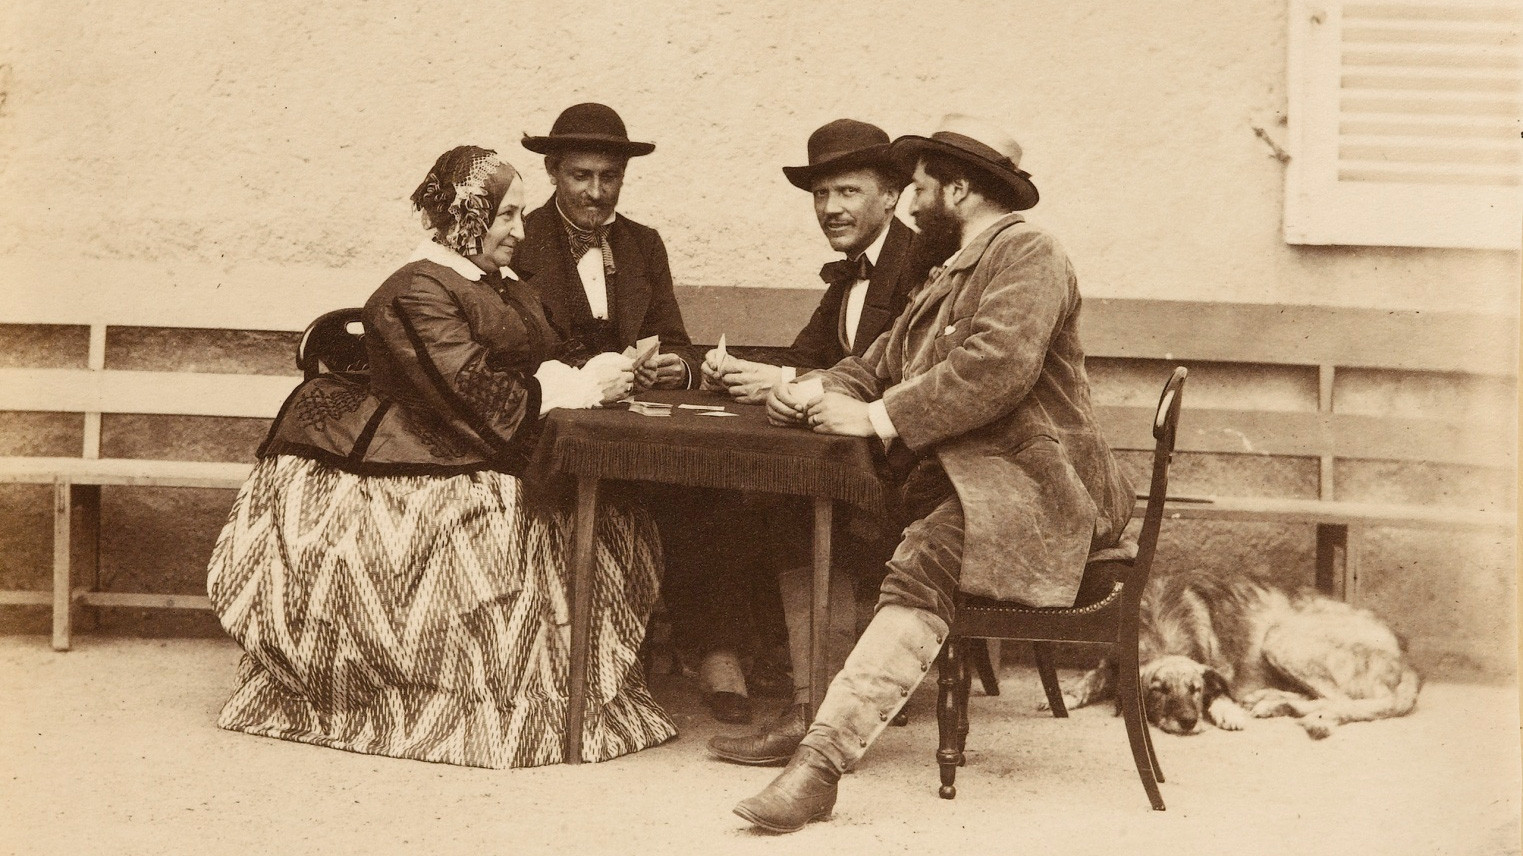 One of the earliest photographs of a card game. By Olympe Aguado, 1860